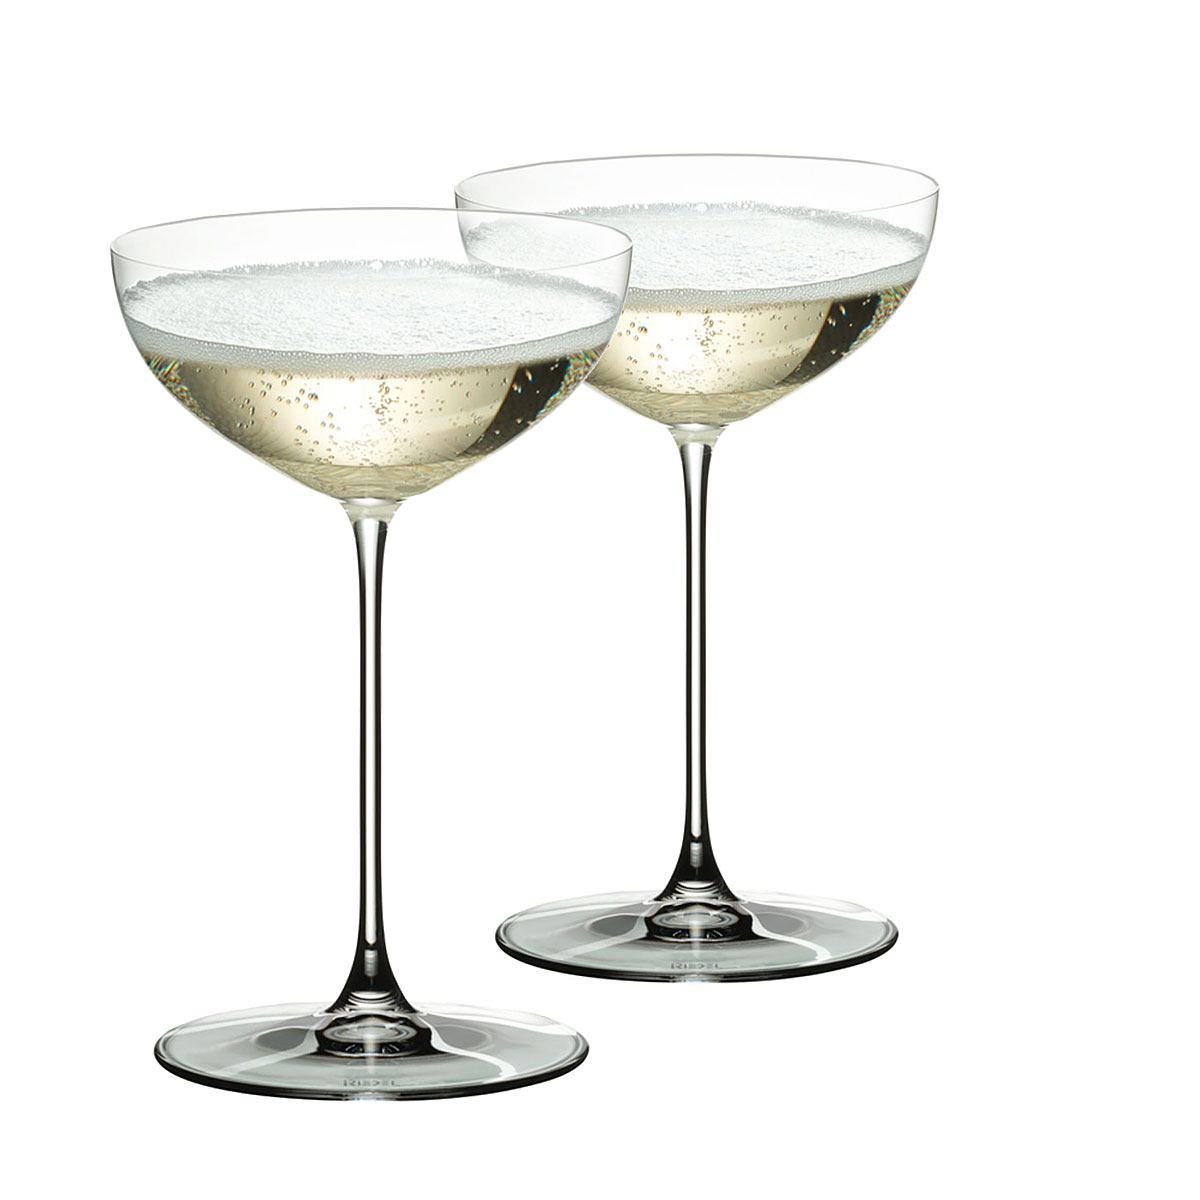 Riedel Veritas, Coupe, Moscato, Martini Wine Glasses, Pair